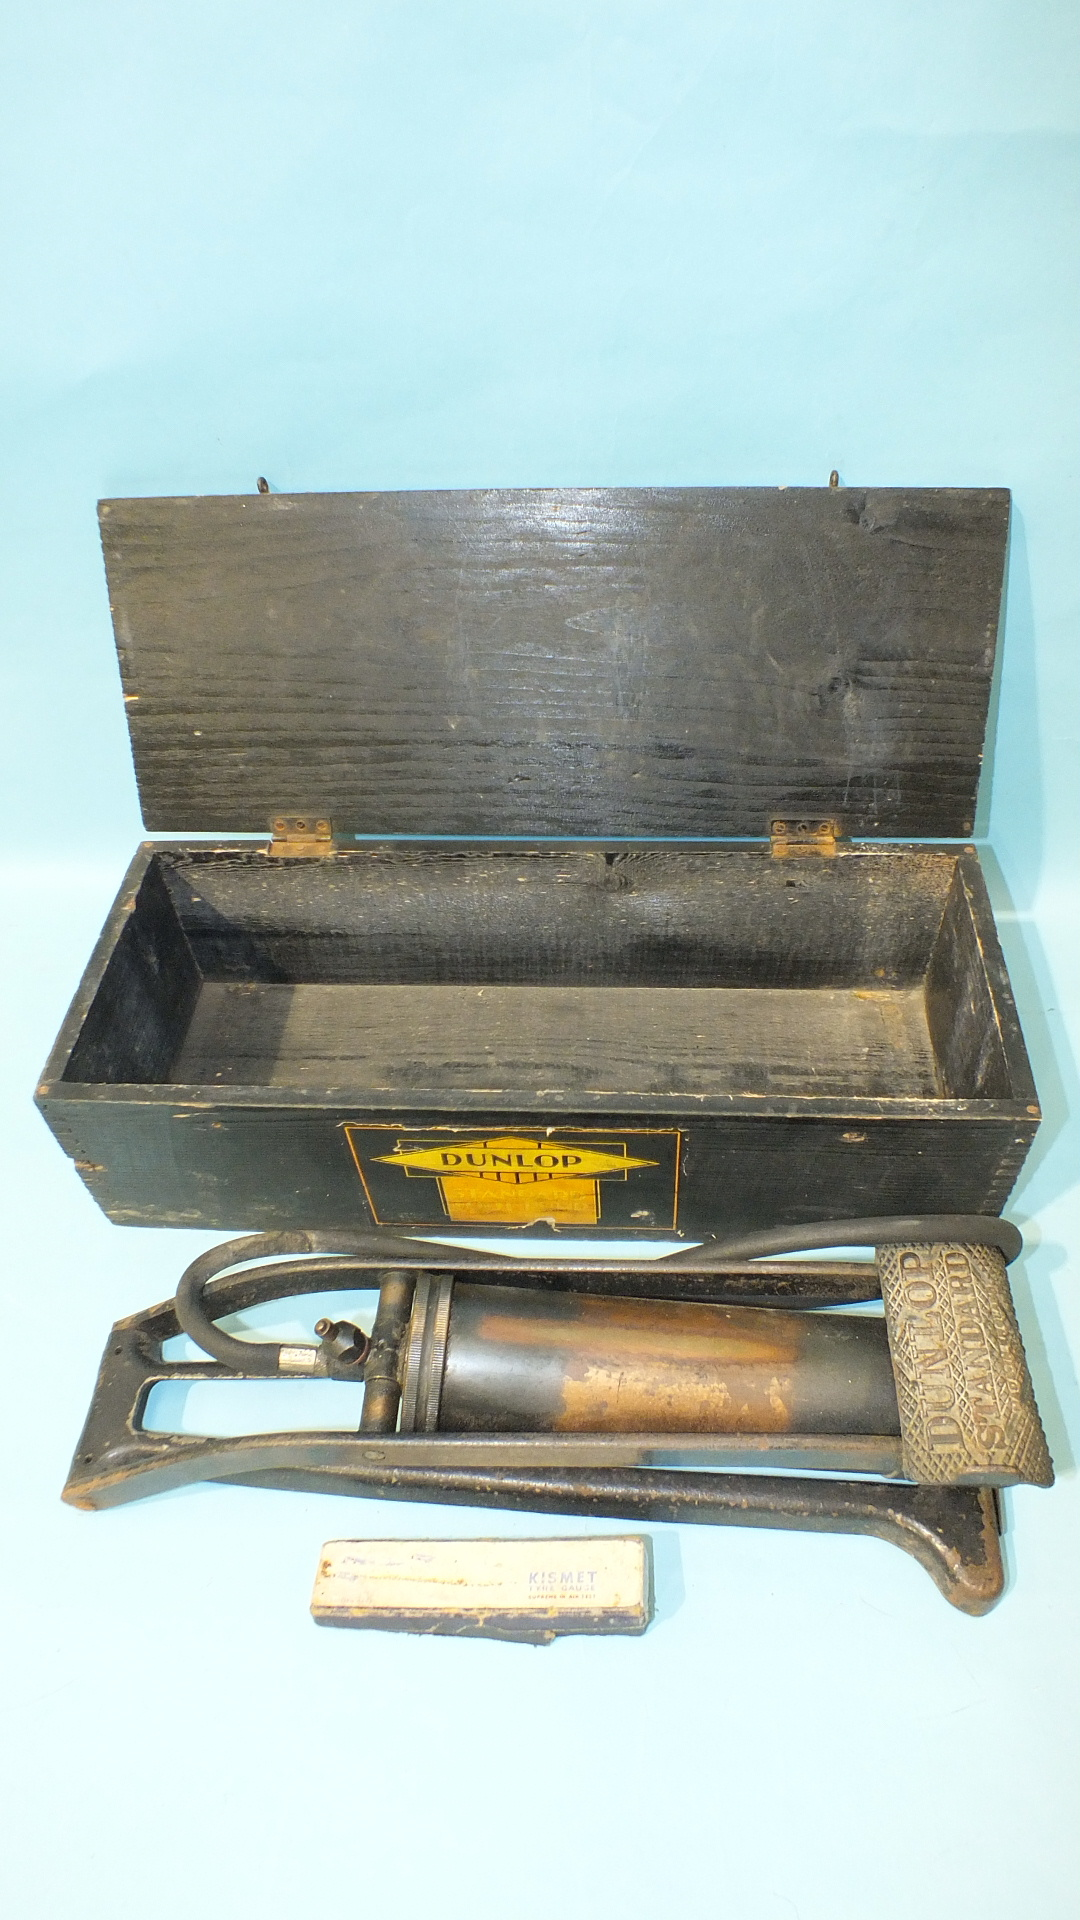 Lot 516 - A Dunlop Standard Foot Pump in original wooden box, with paper labels.